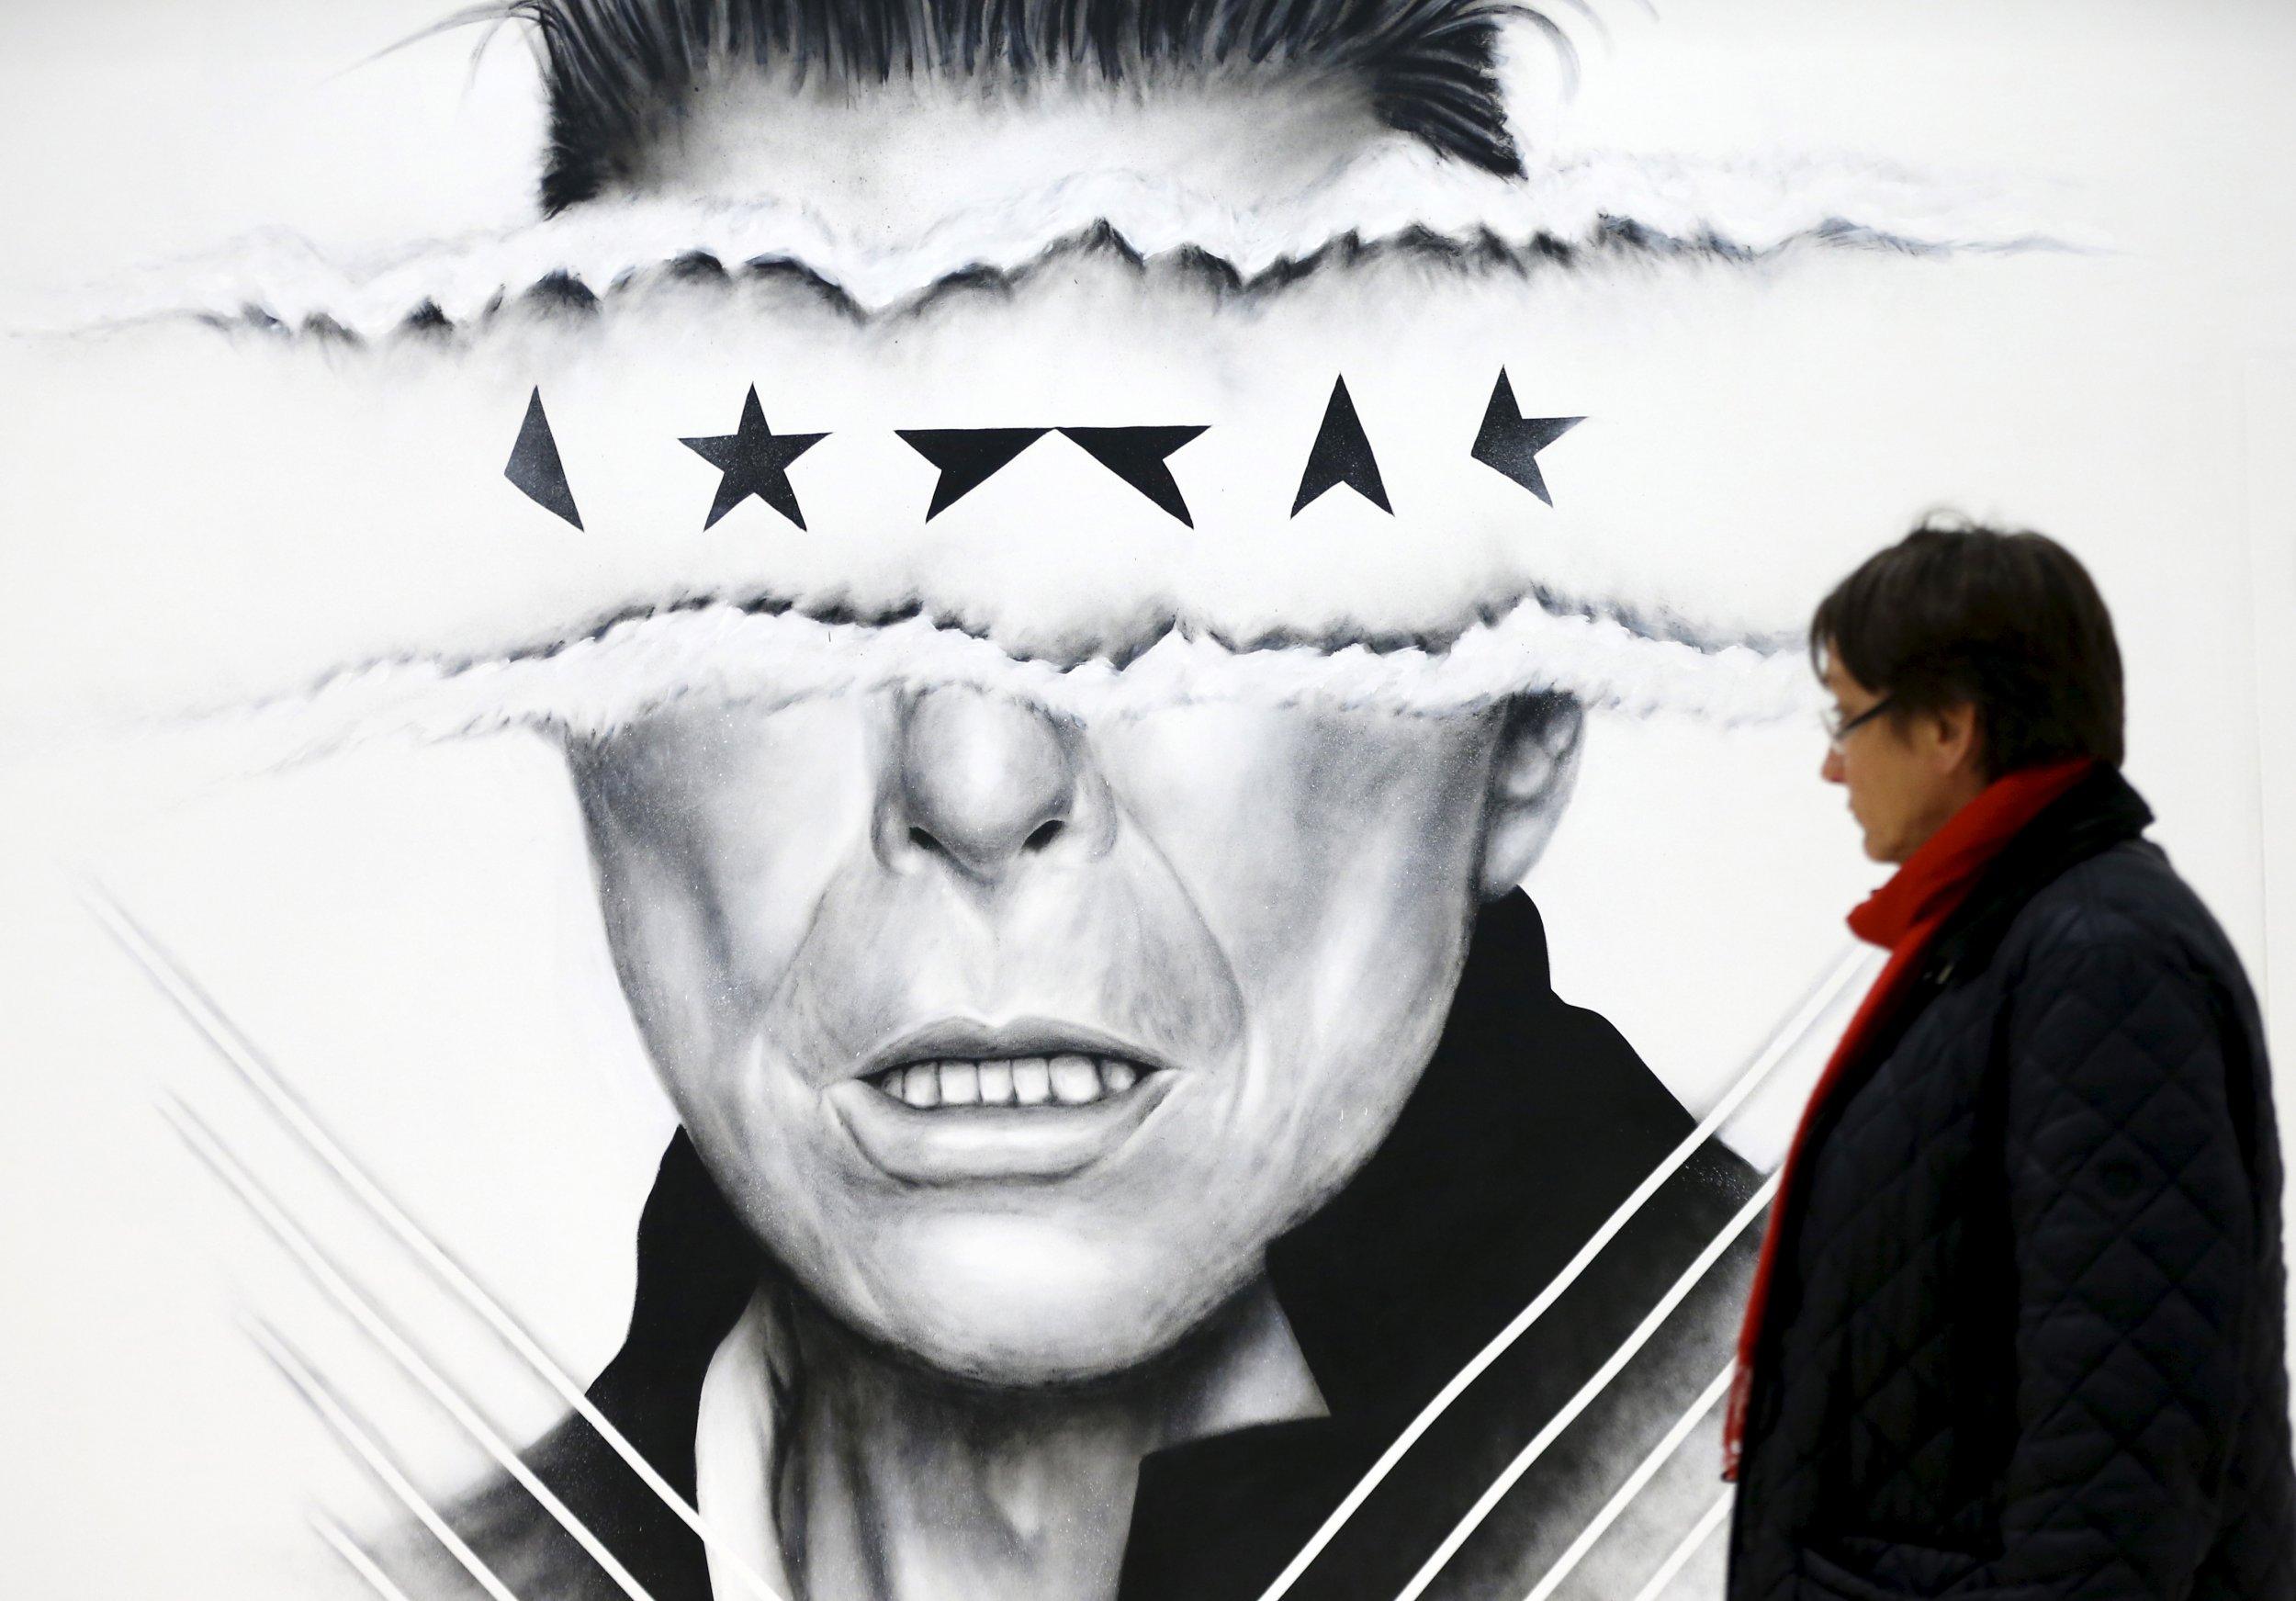 David Bowie Left Hints About His Death on Eerie New Album